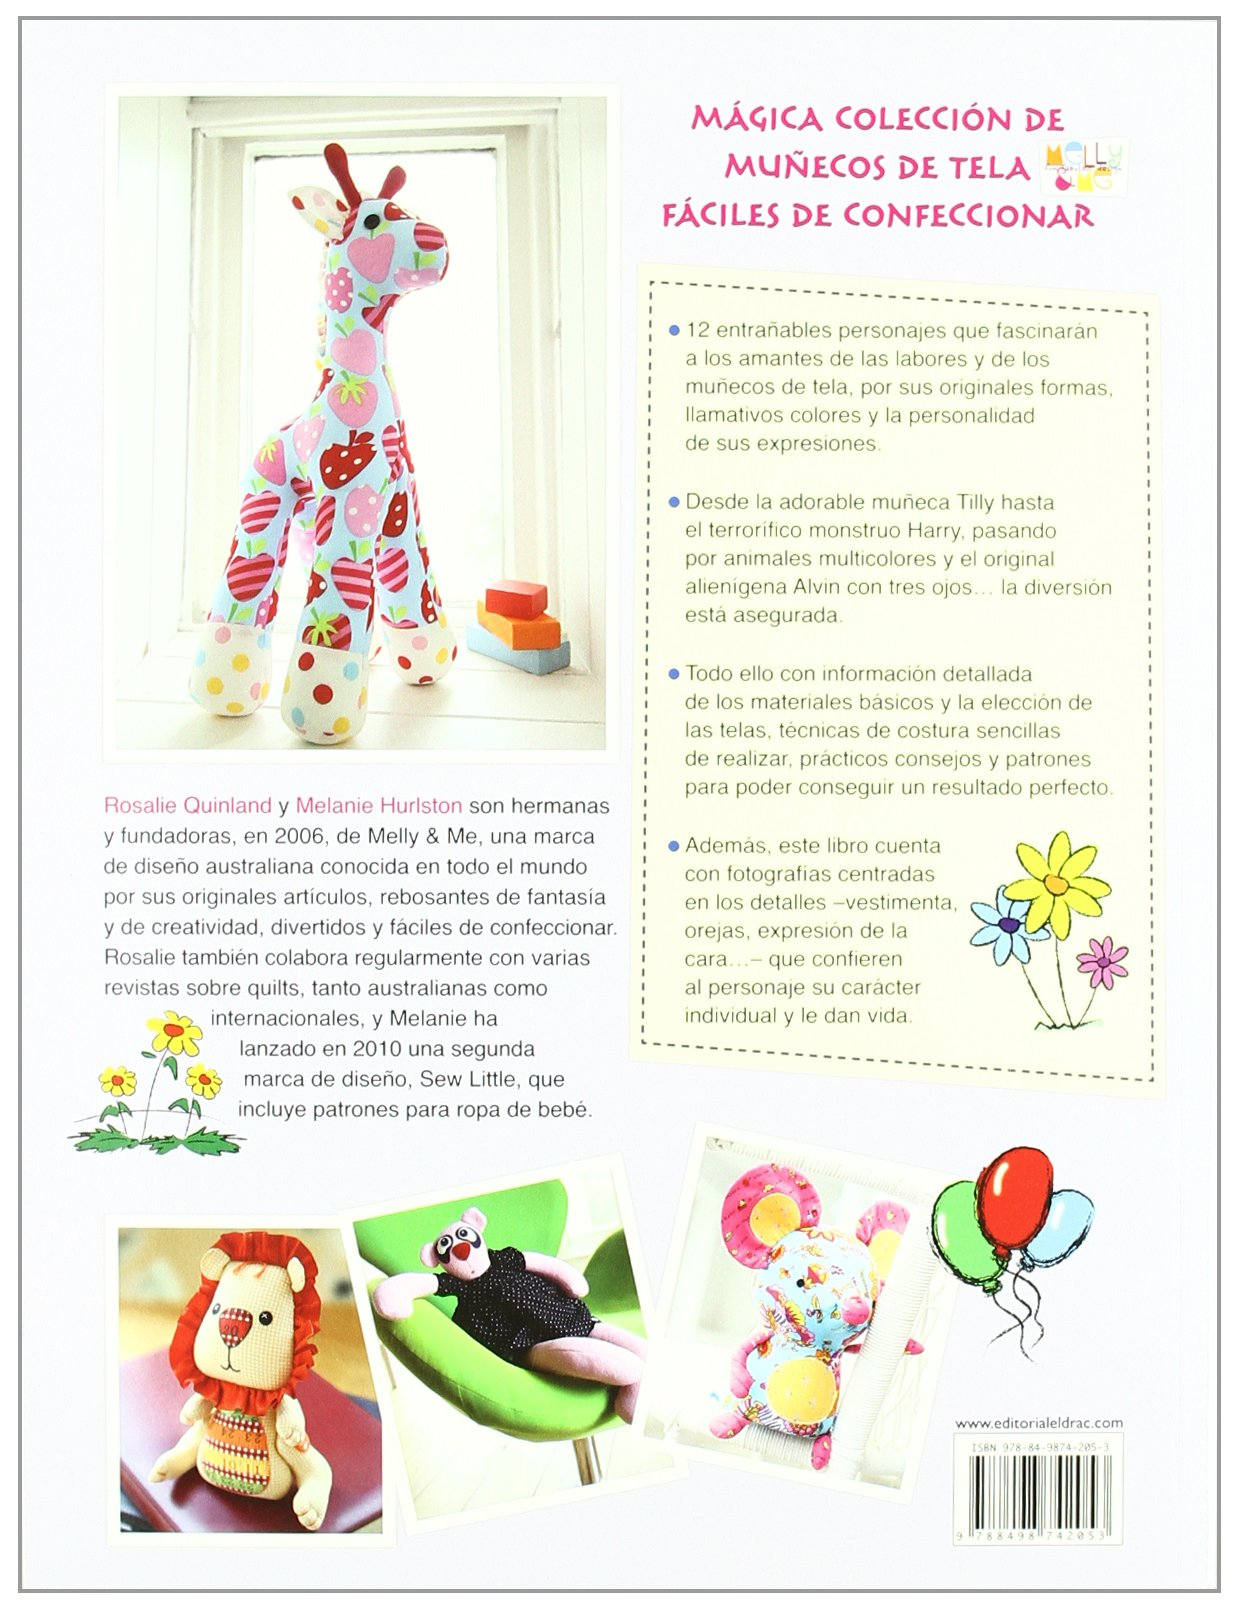 Amazon.com: Munecos de tela con disenos fantasticos y creativos / Sewn Toy Tales: 12 proyectos paso a paso con sus patrones / 12 Projects Step by Step With ...